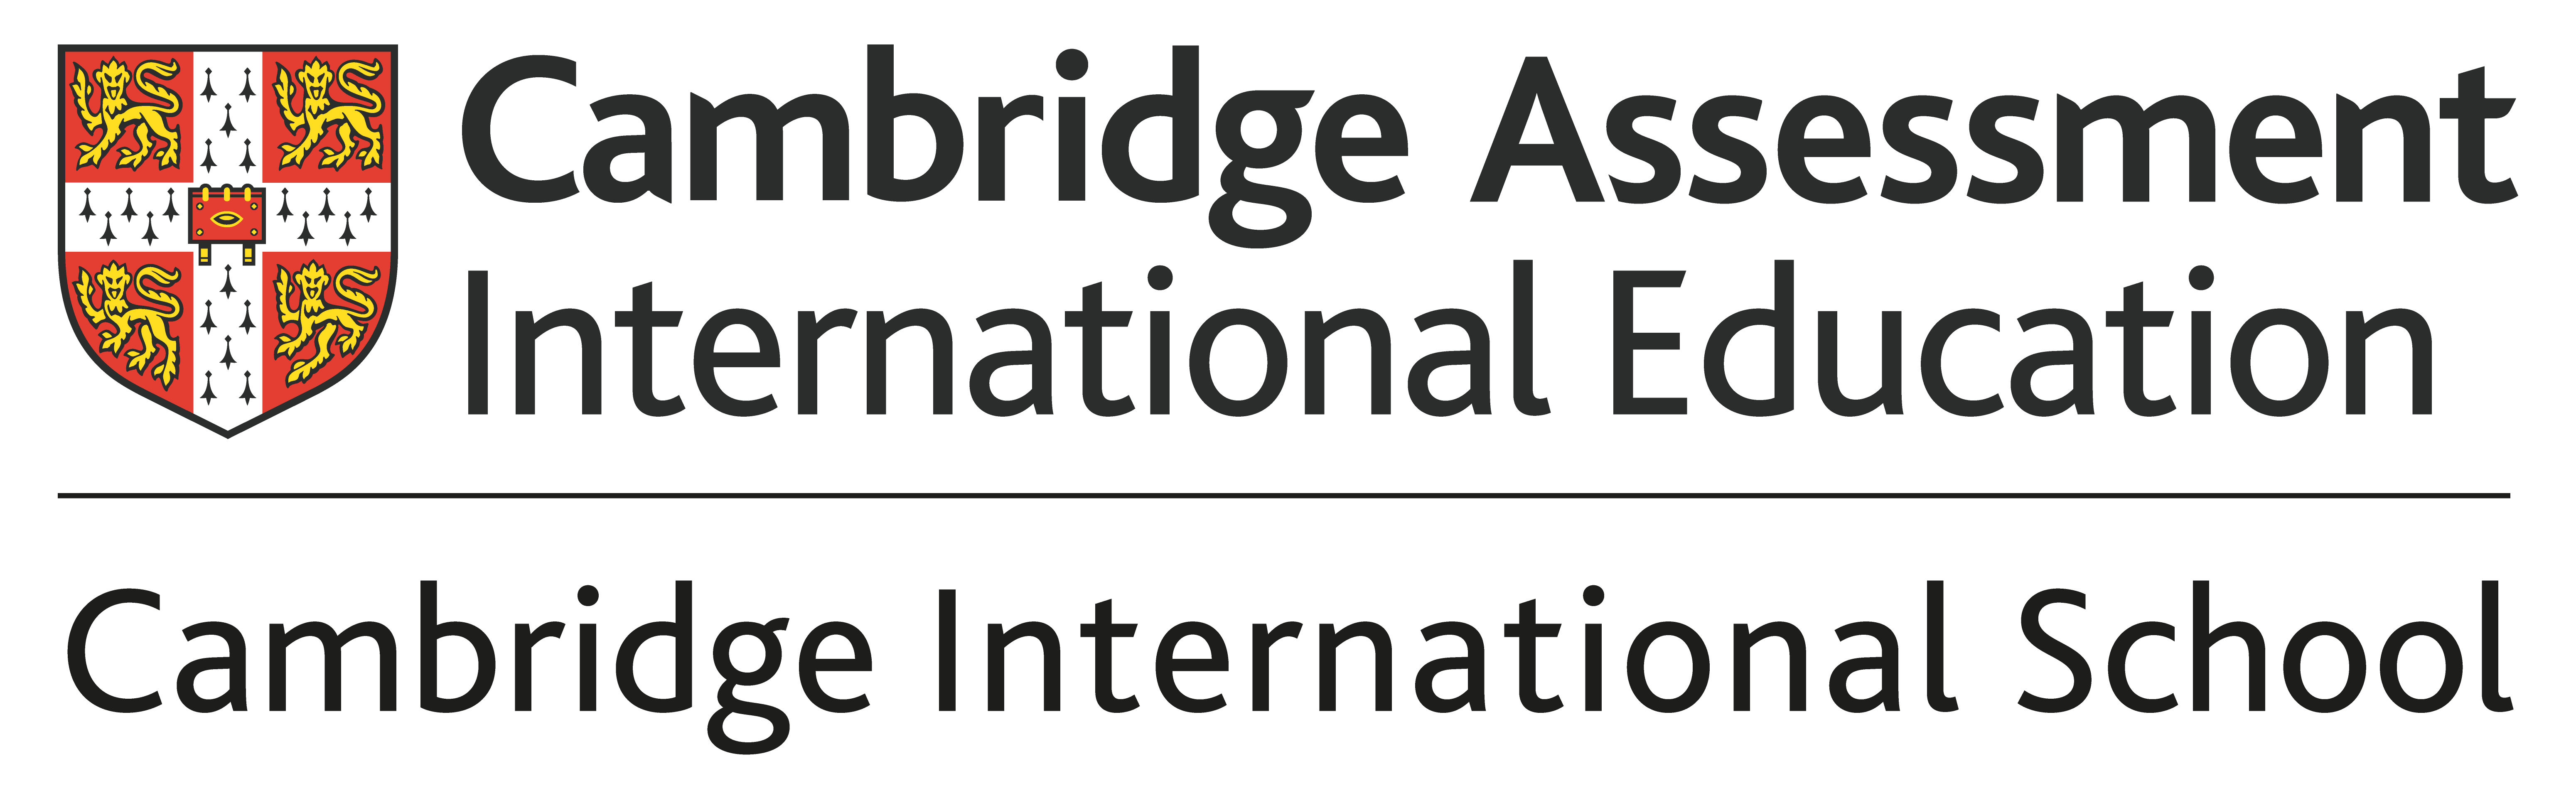 Cambridge Assessment International Education - Cambridge International School